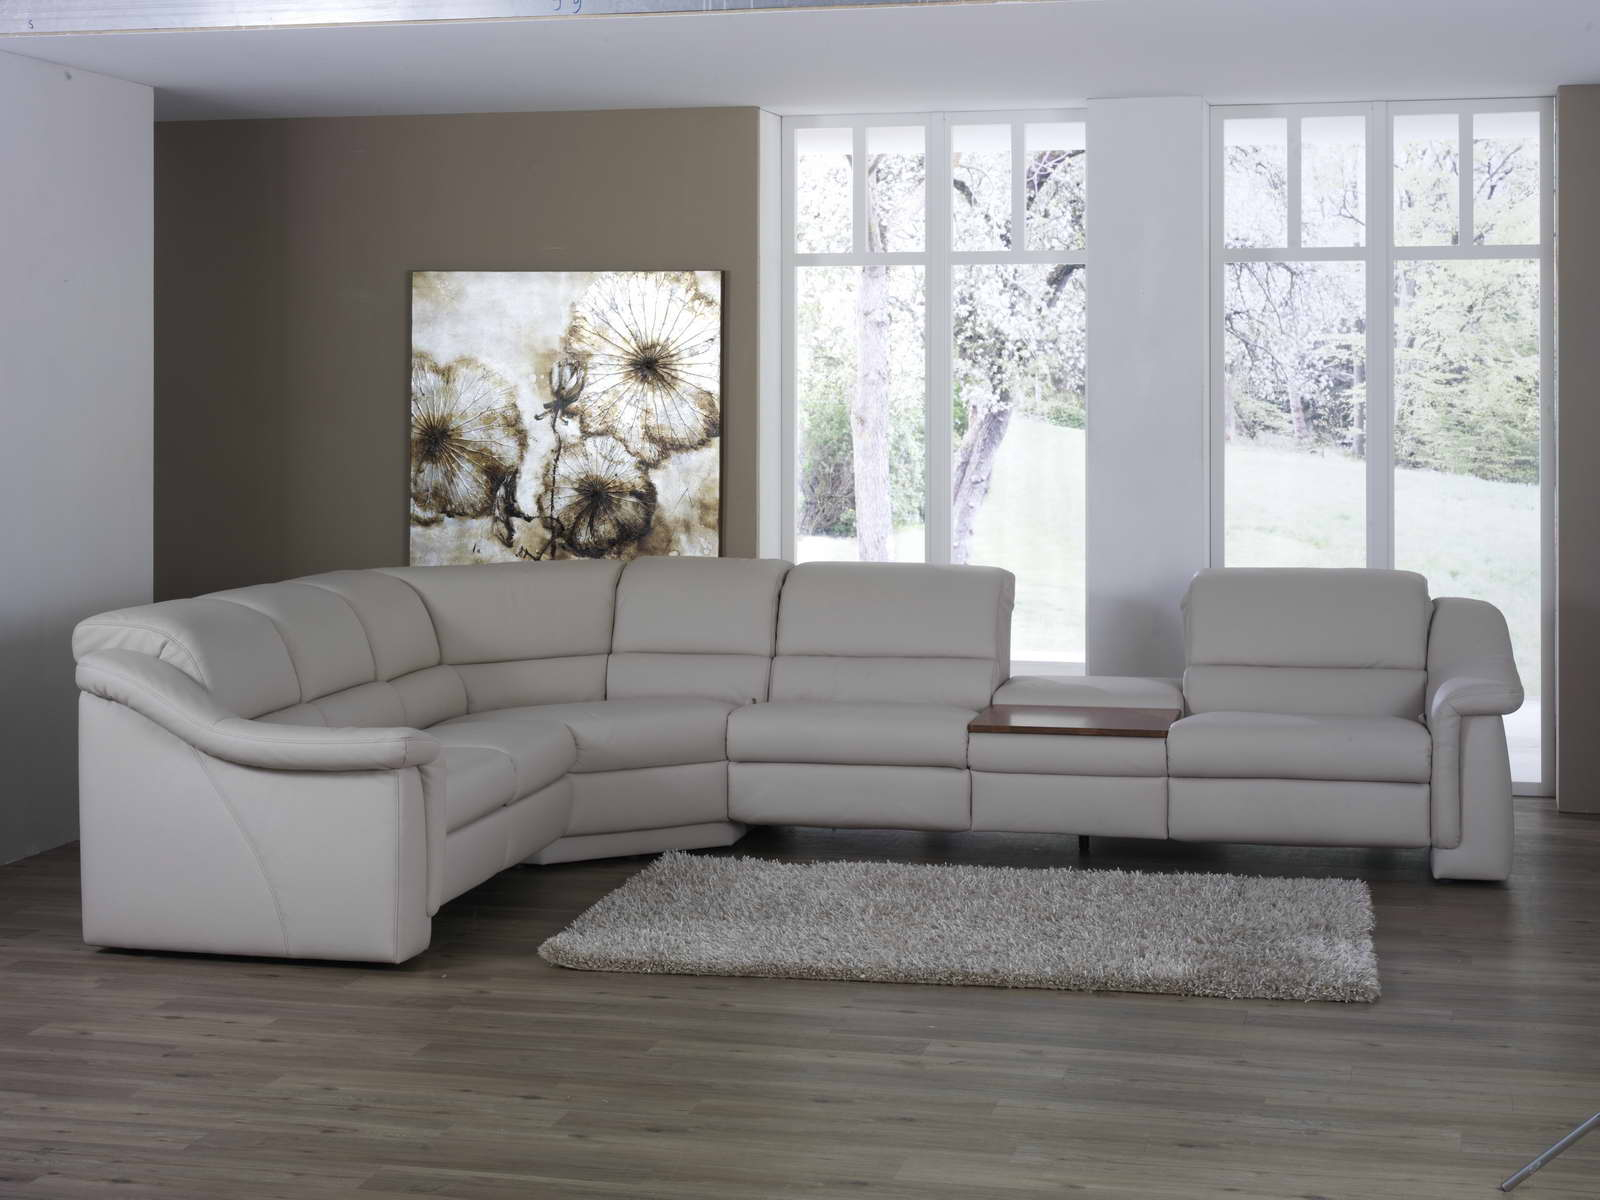 Himolla Ecksofa Leder Longlife By Himolla Gallery Of Ring Himolla Aus Leder In Braun